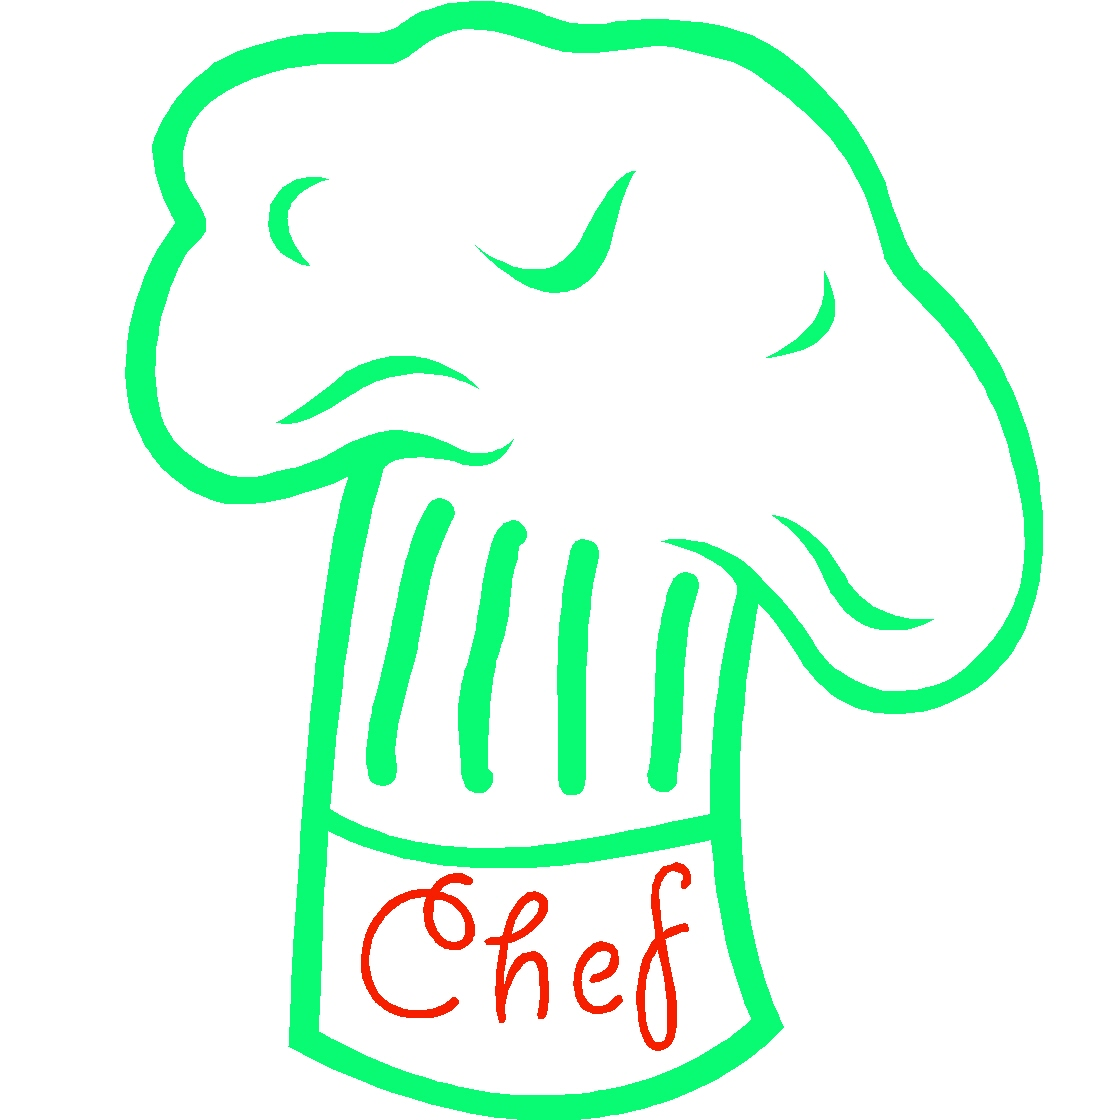 Picture Of Chef Hat - ClipArt Best